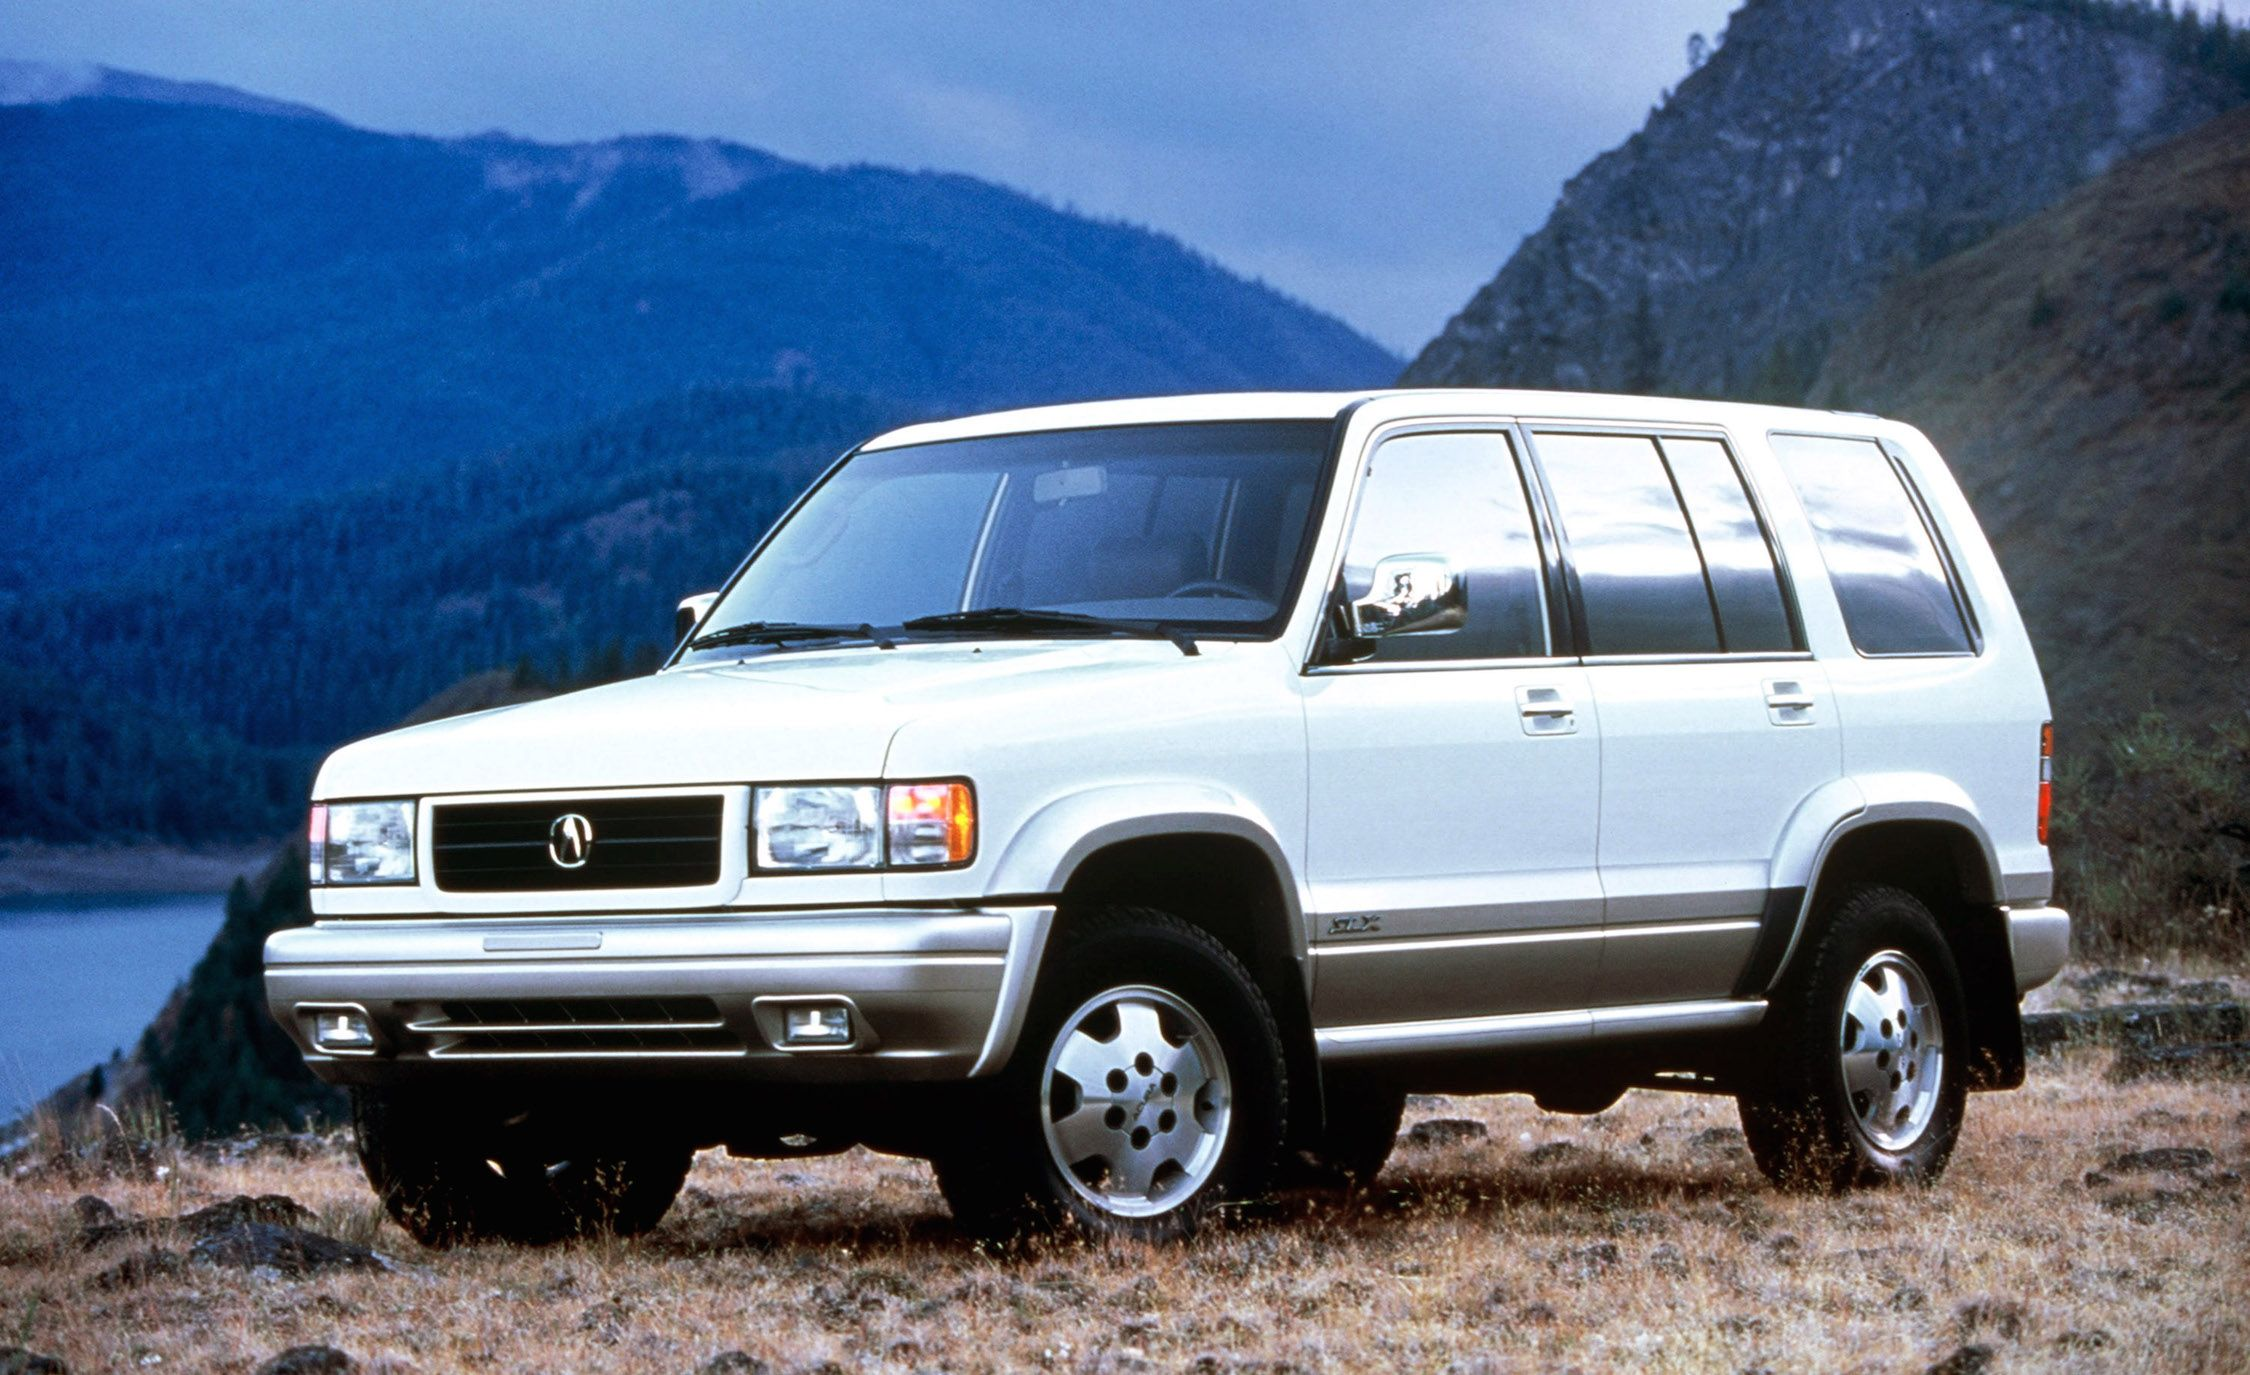 Gone Without A Trace These Are The Forgotten Suvs 1992 Isuzu Pickup Problems